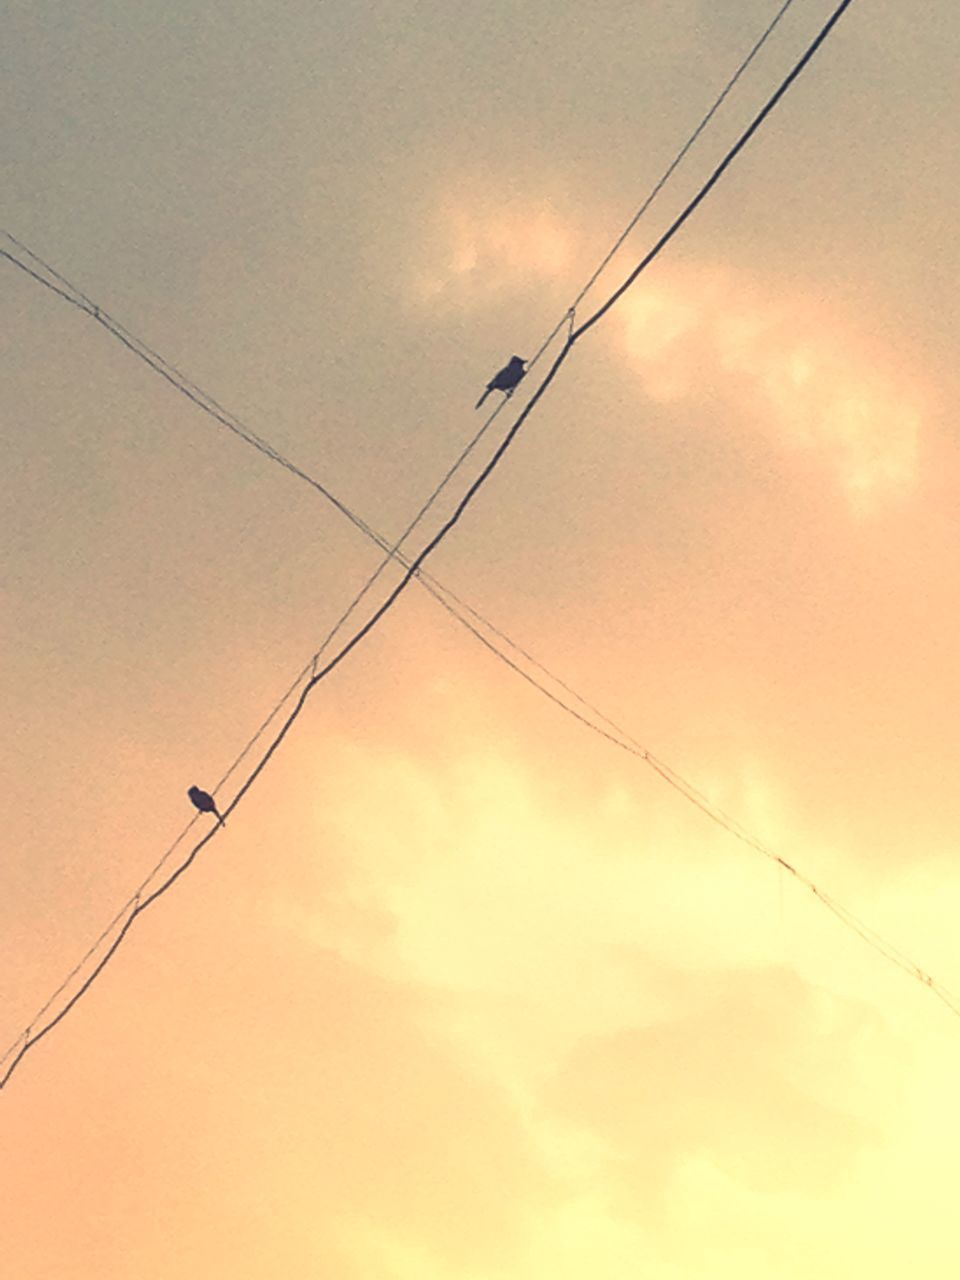 cable, sunset, power line, connection, low angle view, electricity, power supply, sky, silhouette, telephone line, no people, fuel and power generation, cloud - sky, technology, nature, bird, outdoors, electricity pylon, beauty in nature, overhead cable car, day, animal themes, vapor trail